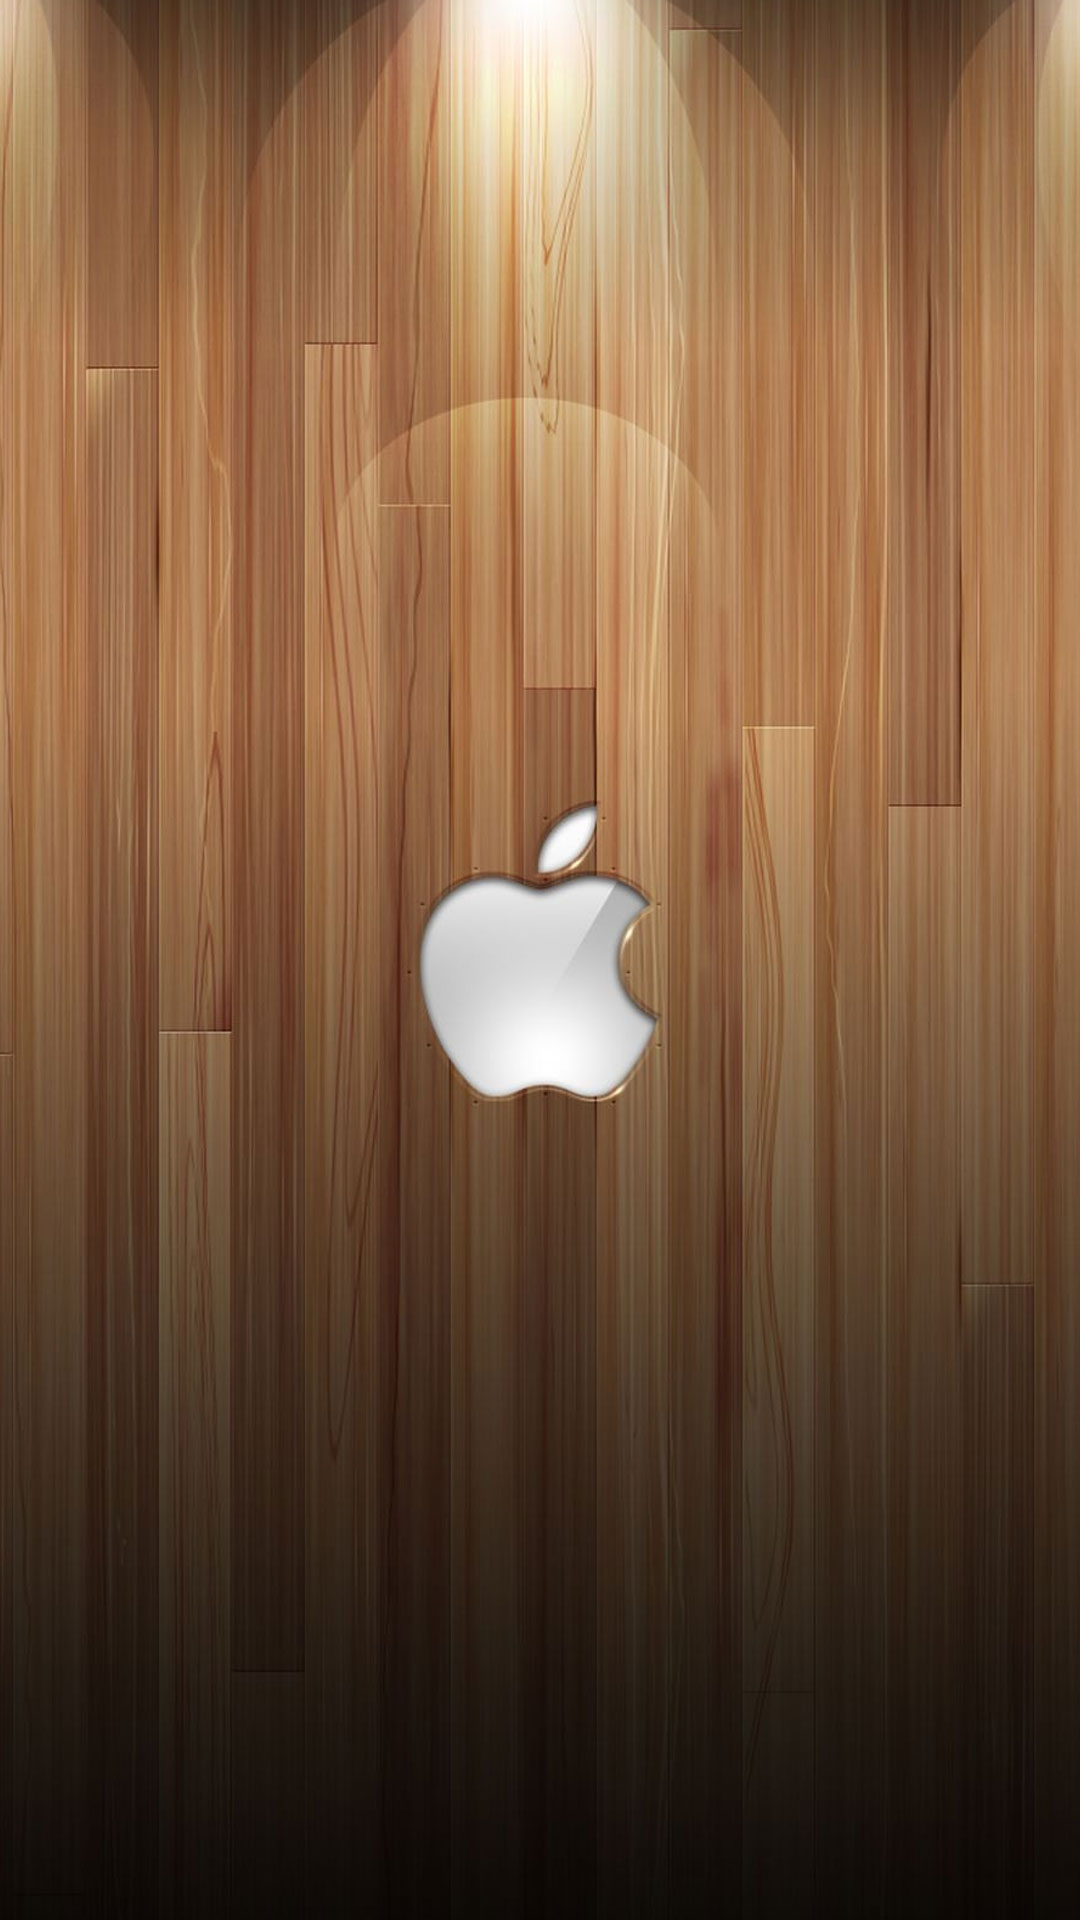 25 Best Cool iPhone 6 Plus Wallpapers Backgrounds in HD Quality 1080x1920